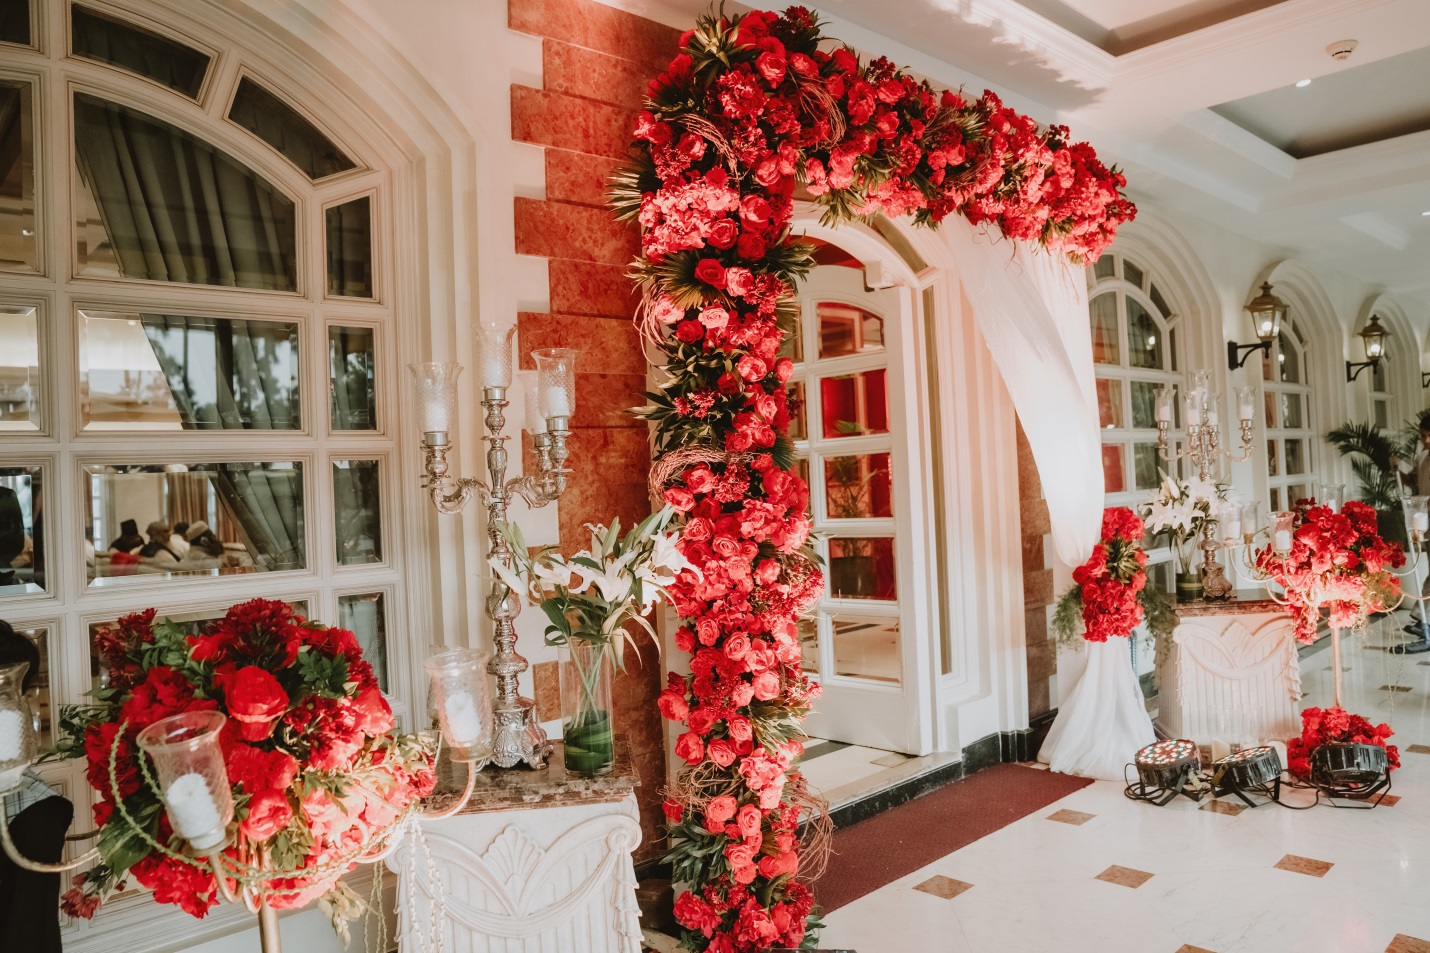 Floral decorations for wedding reception